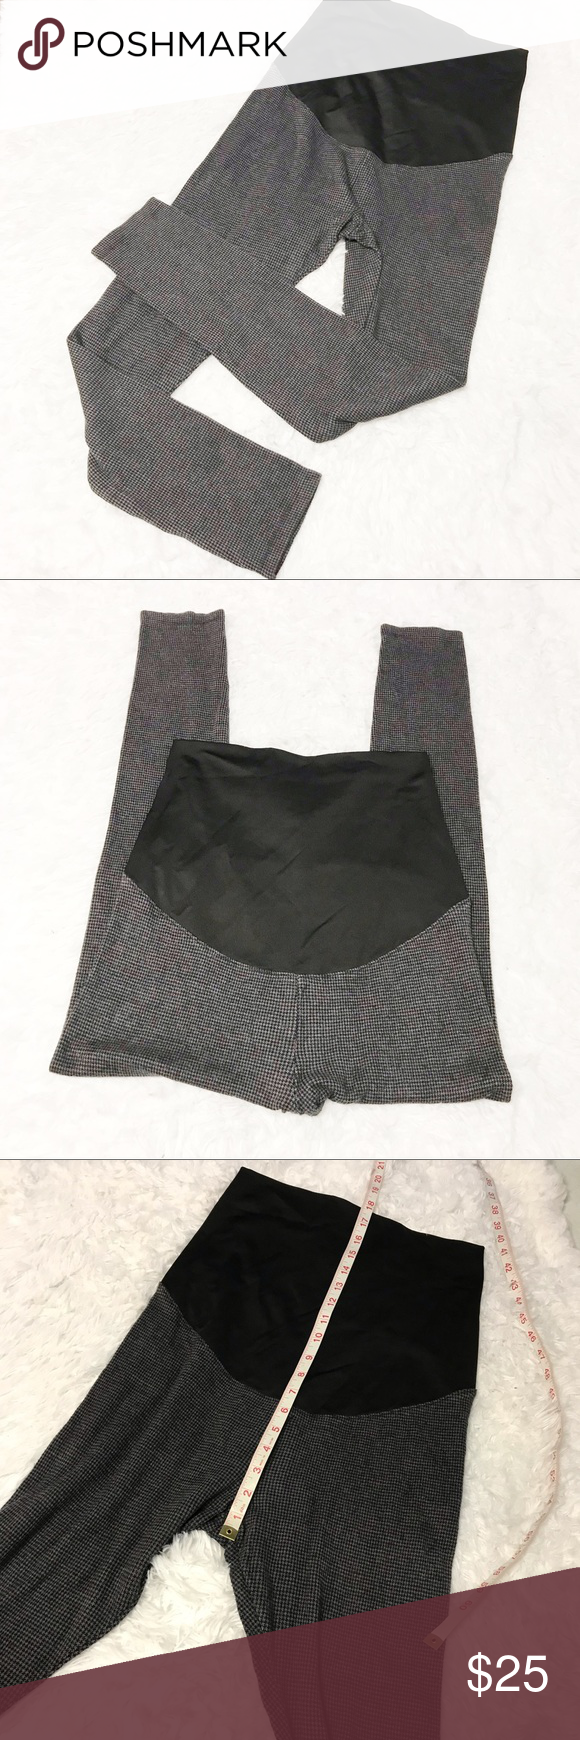 afeedb4c167a0 Lou & Grey Maternity Gray houndstooth leggings SM EUC Flawless Stretchy  Skinny Please look at pictures